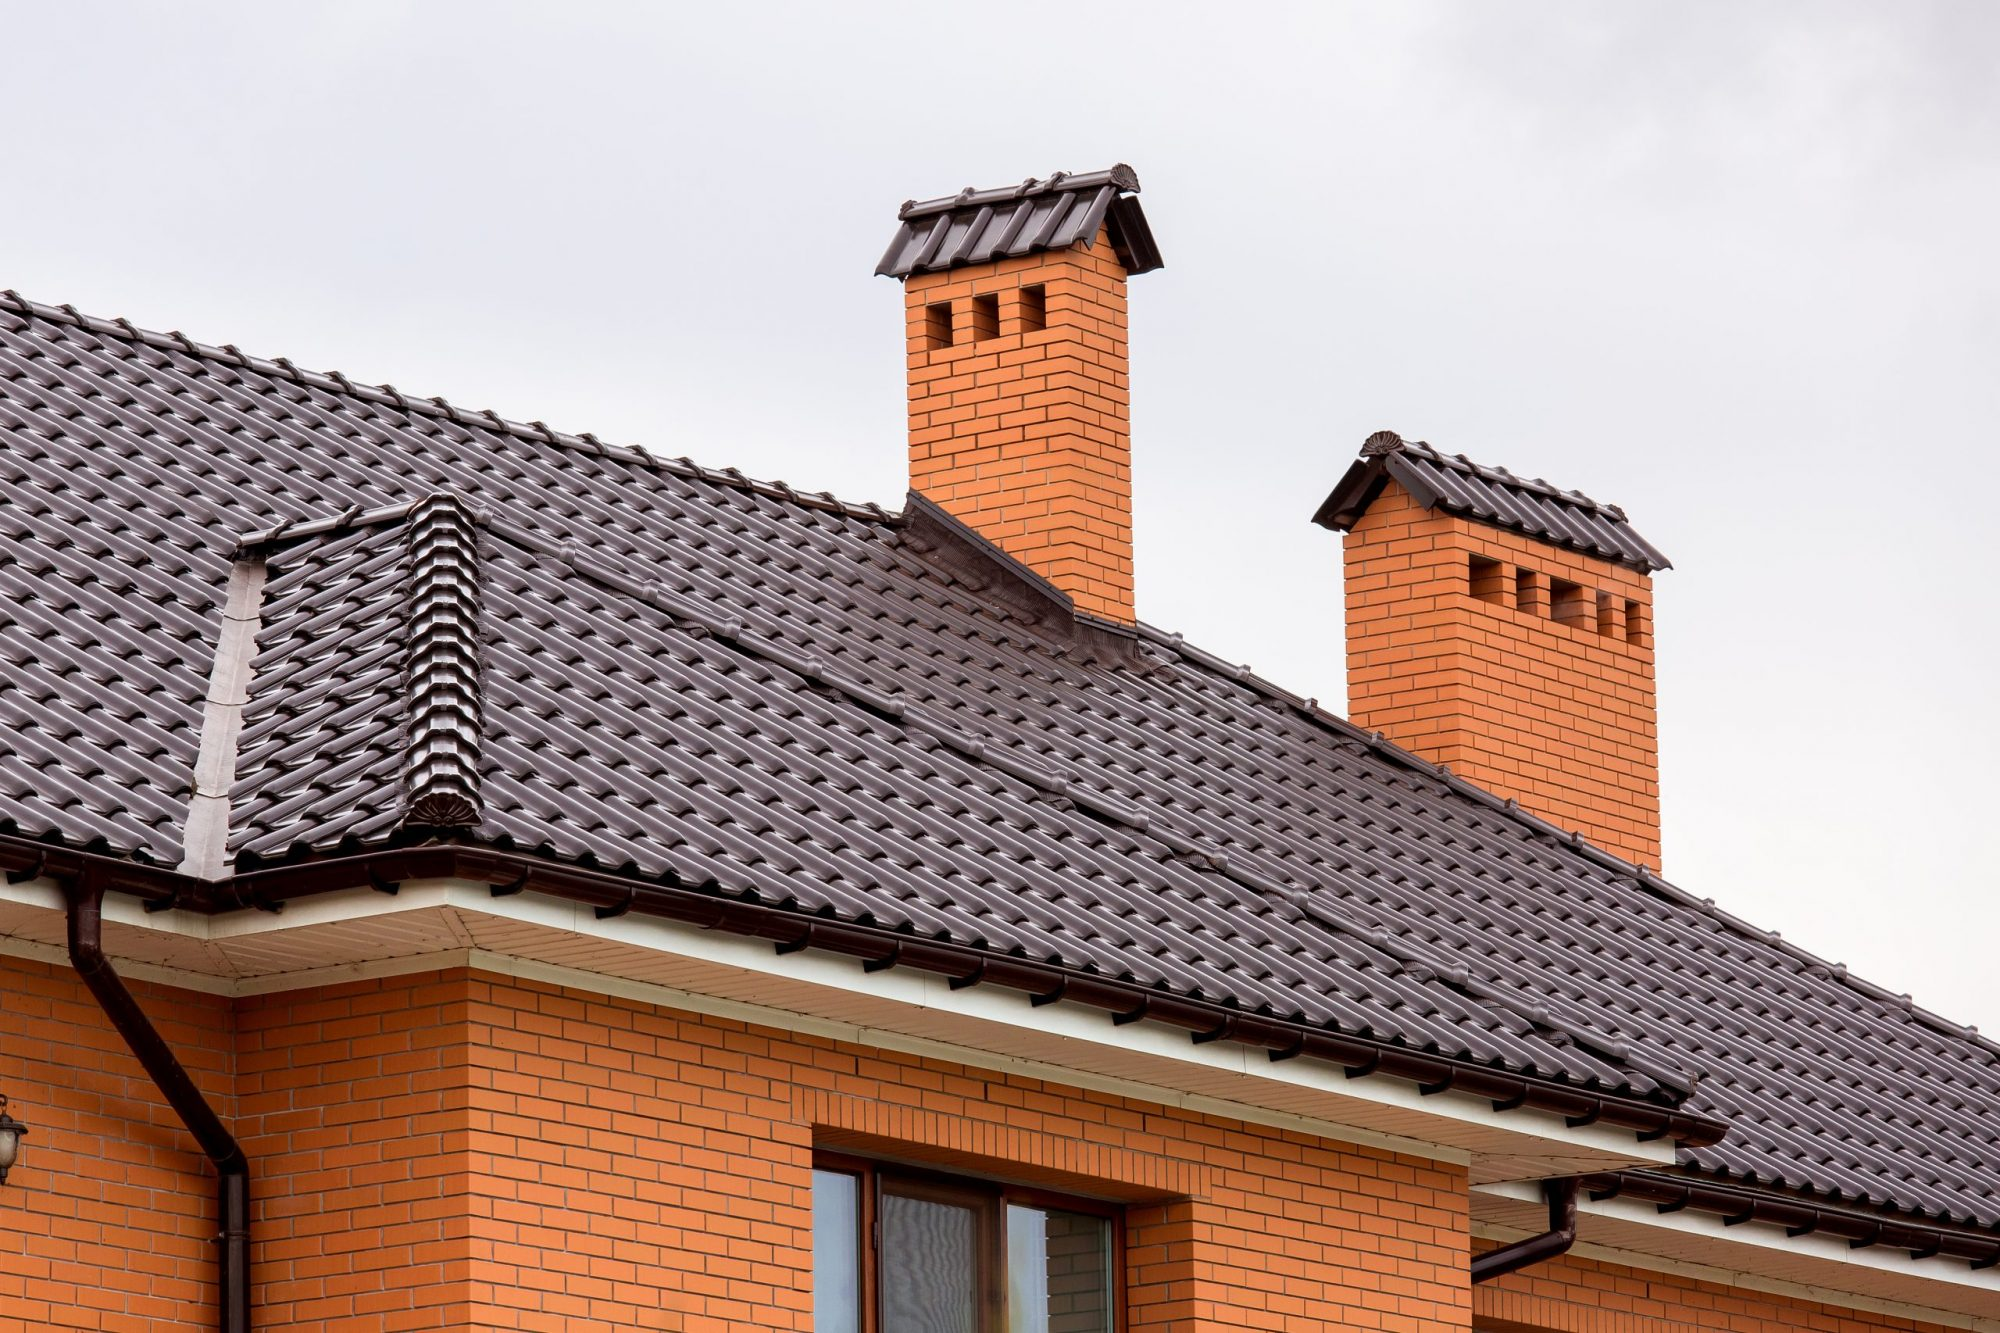 beautiful tile roof synthetic roof company st louis missouri roof tiles roofing roofer roofers tile roof installation excellent tile roofing contractor st louis webster groves chesterfield ladue town and country